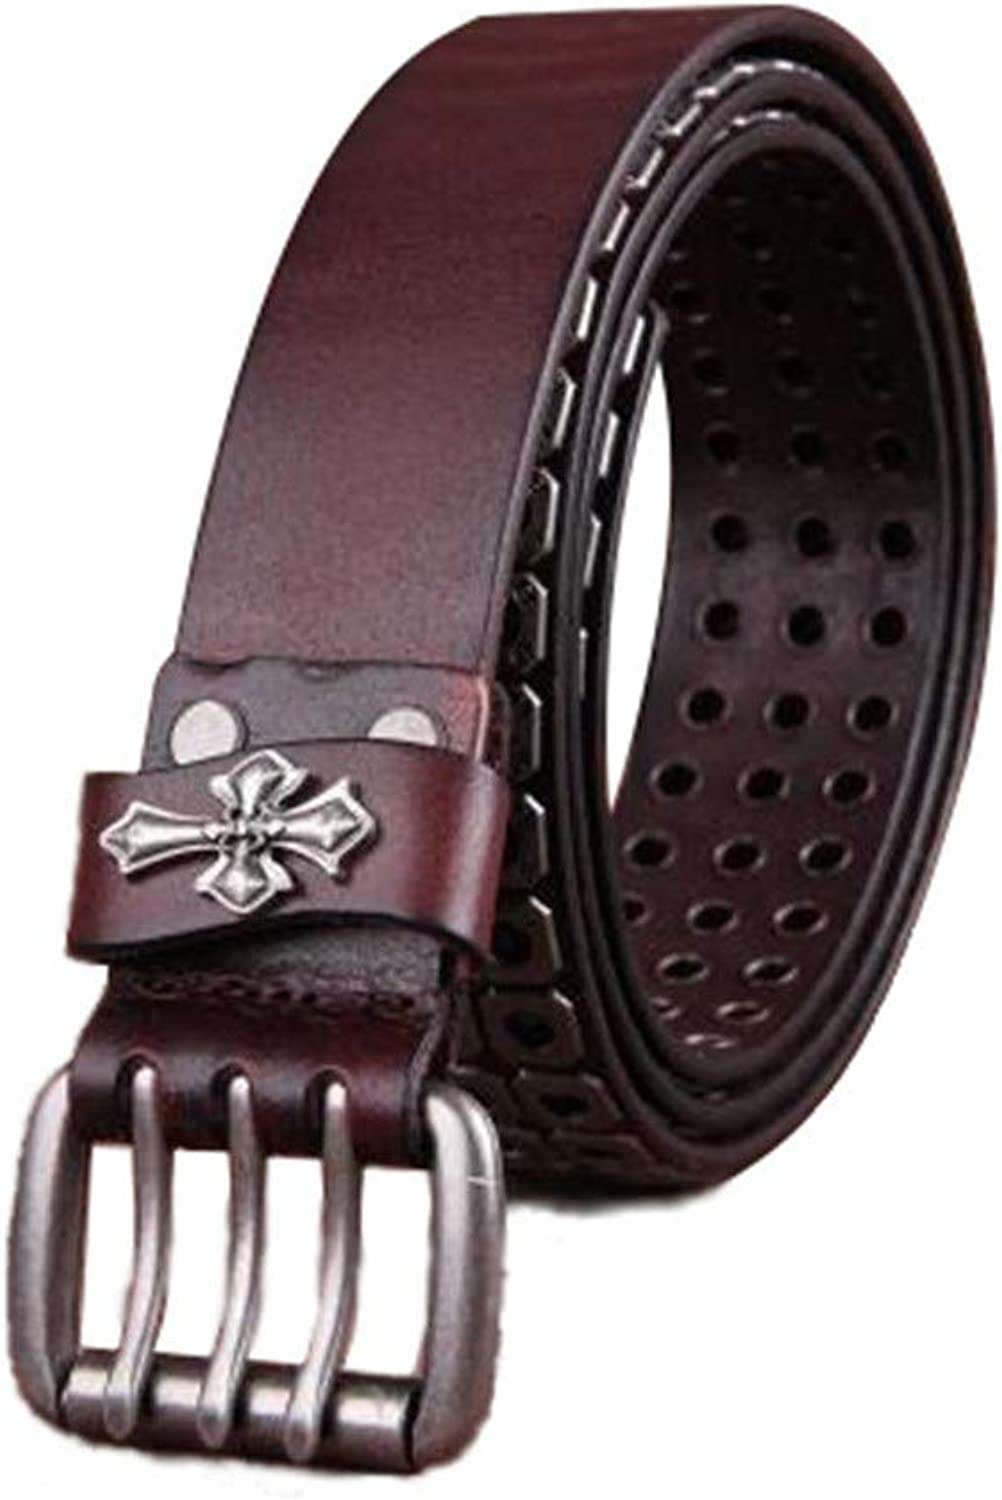 Studded Jeans Anti-Scratch Pin Triple Buckle Leather Belt Unisex Brown Belts (color   Brown, Size   Free Size)